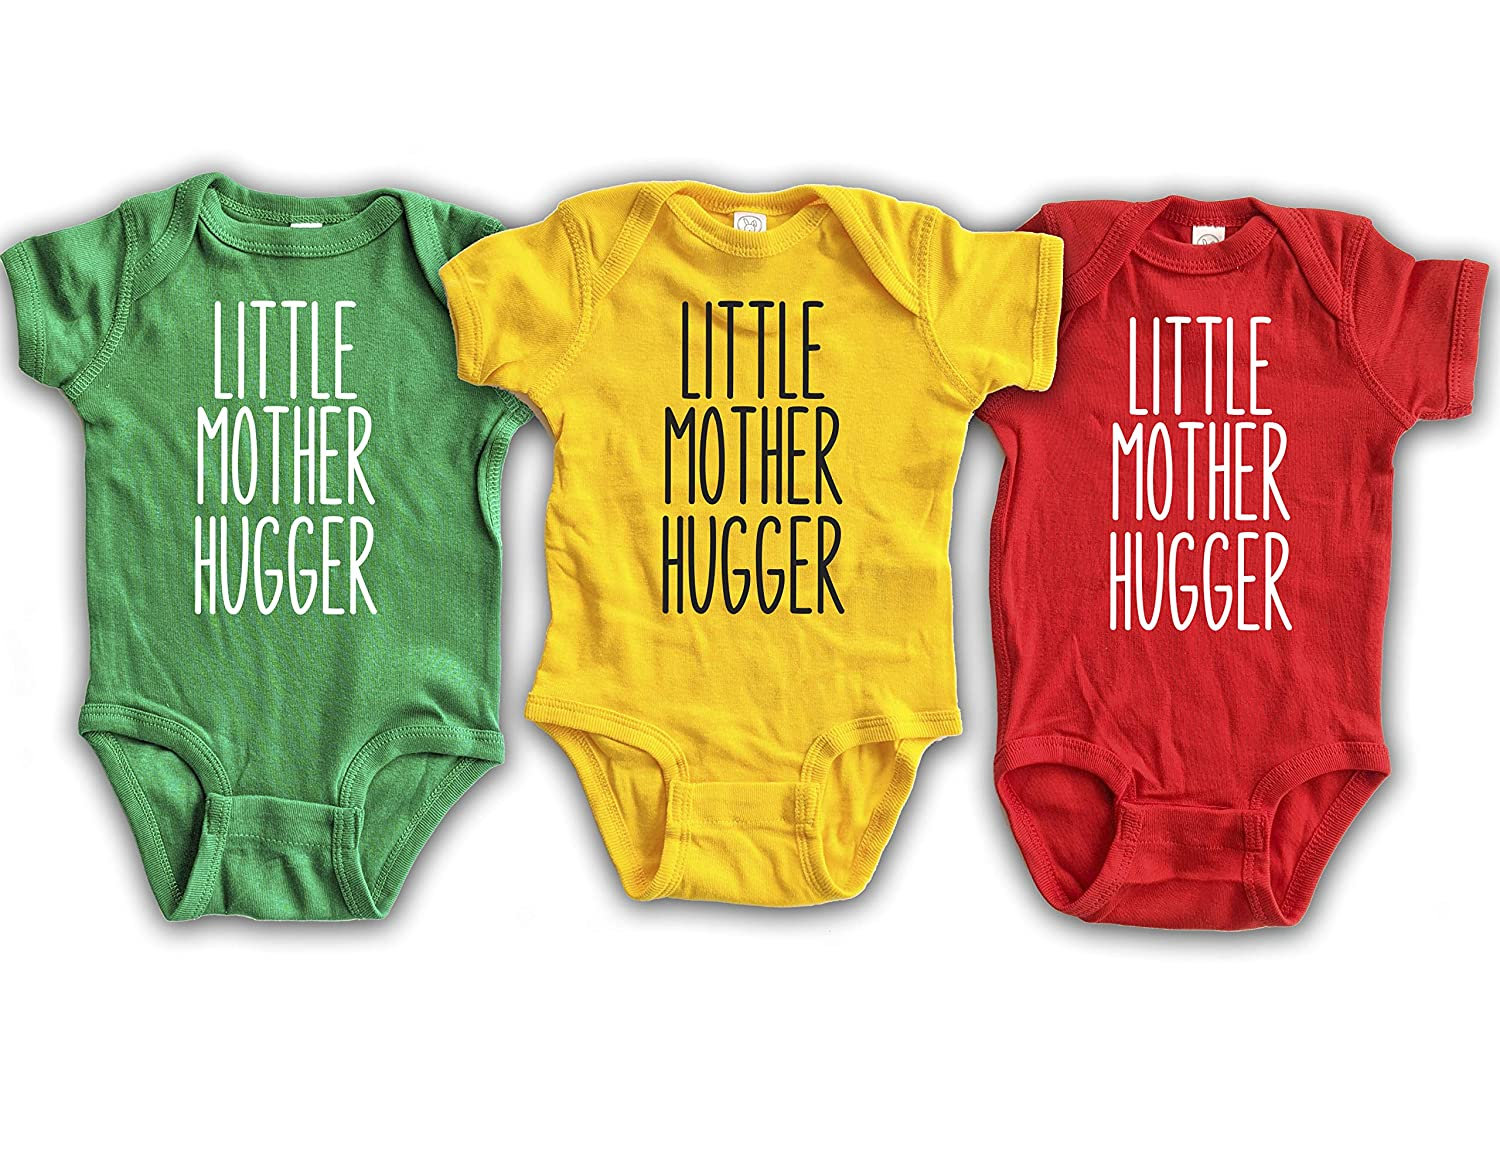 Indefinitely Little Mother Hugger Funny Mothers Day for Shirts fr Kids Gift Excellence